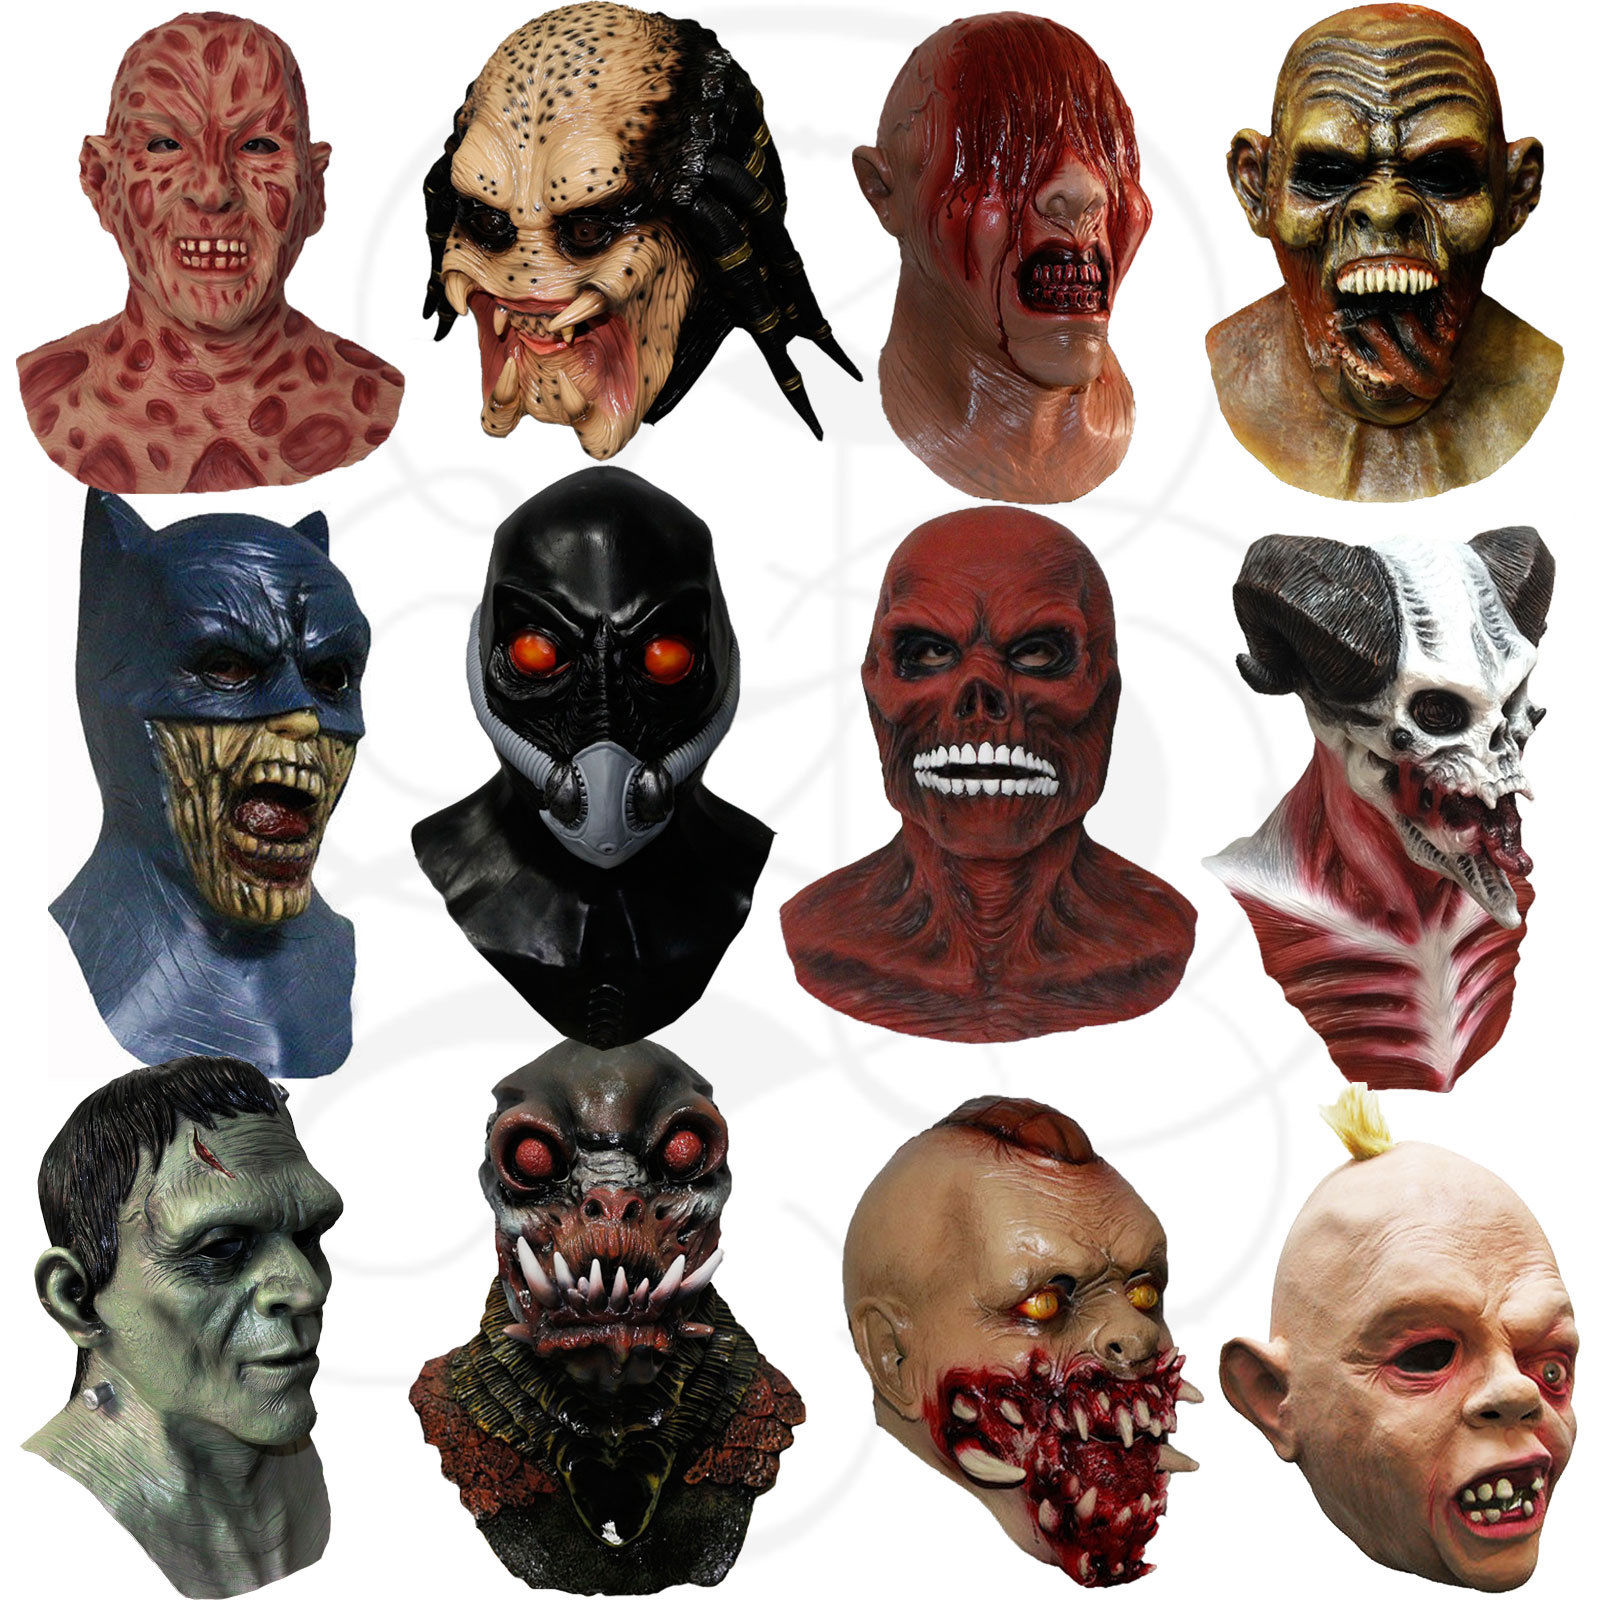 Latex Horror Vampire Zombies Goonies Halloween Masks | Eco ...